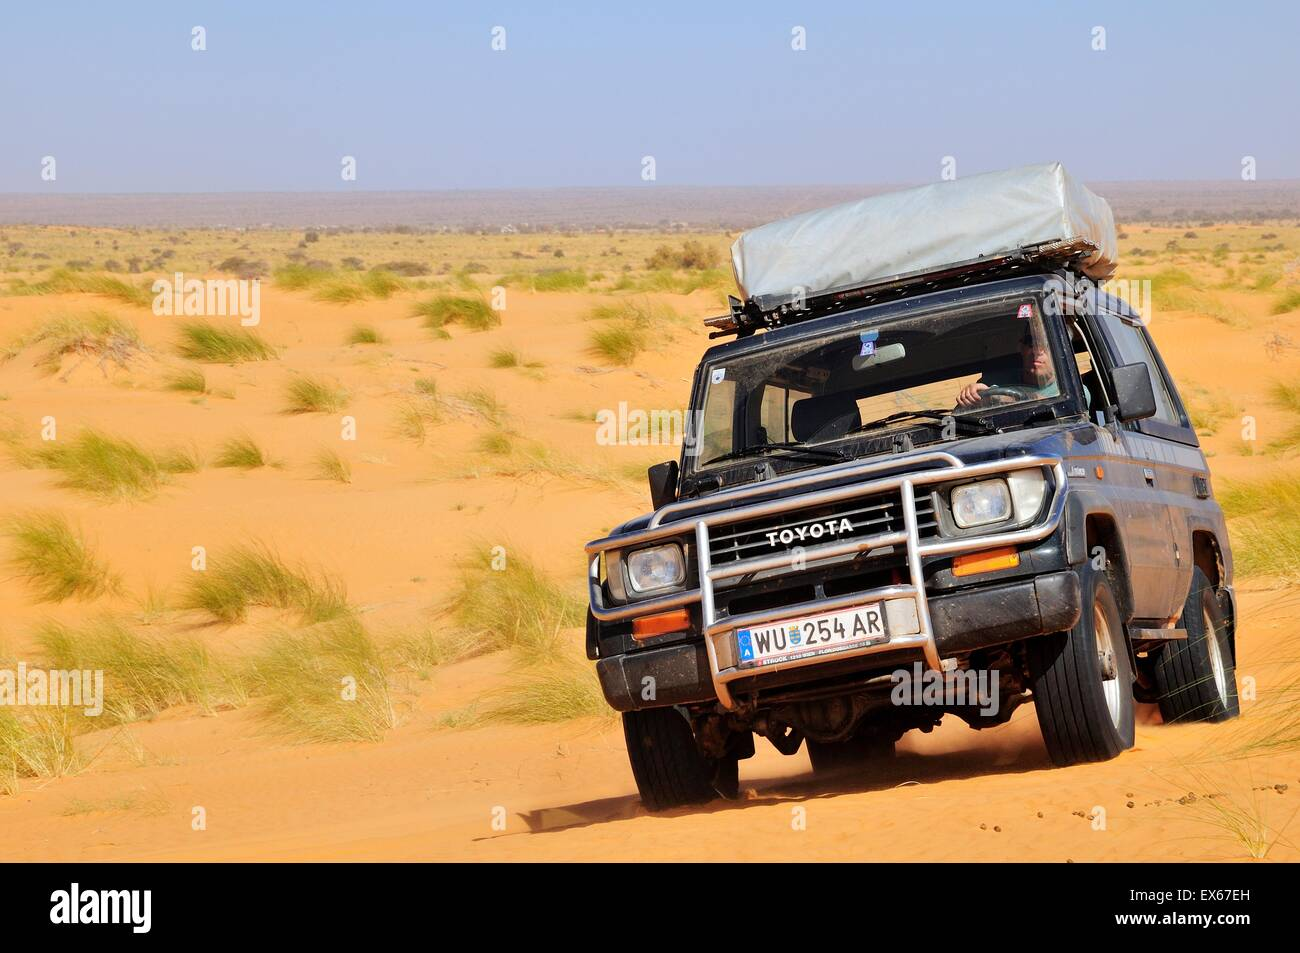 SUV with roof tent on the road in the desert, route from Atar to Tidjikja, Adrar region, Mauritania - Stock Image